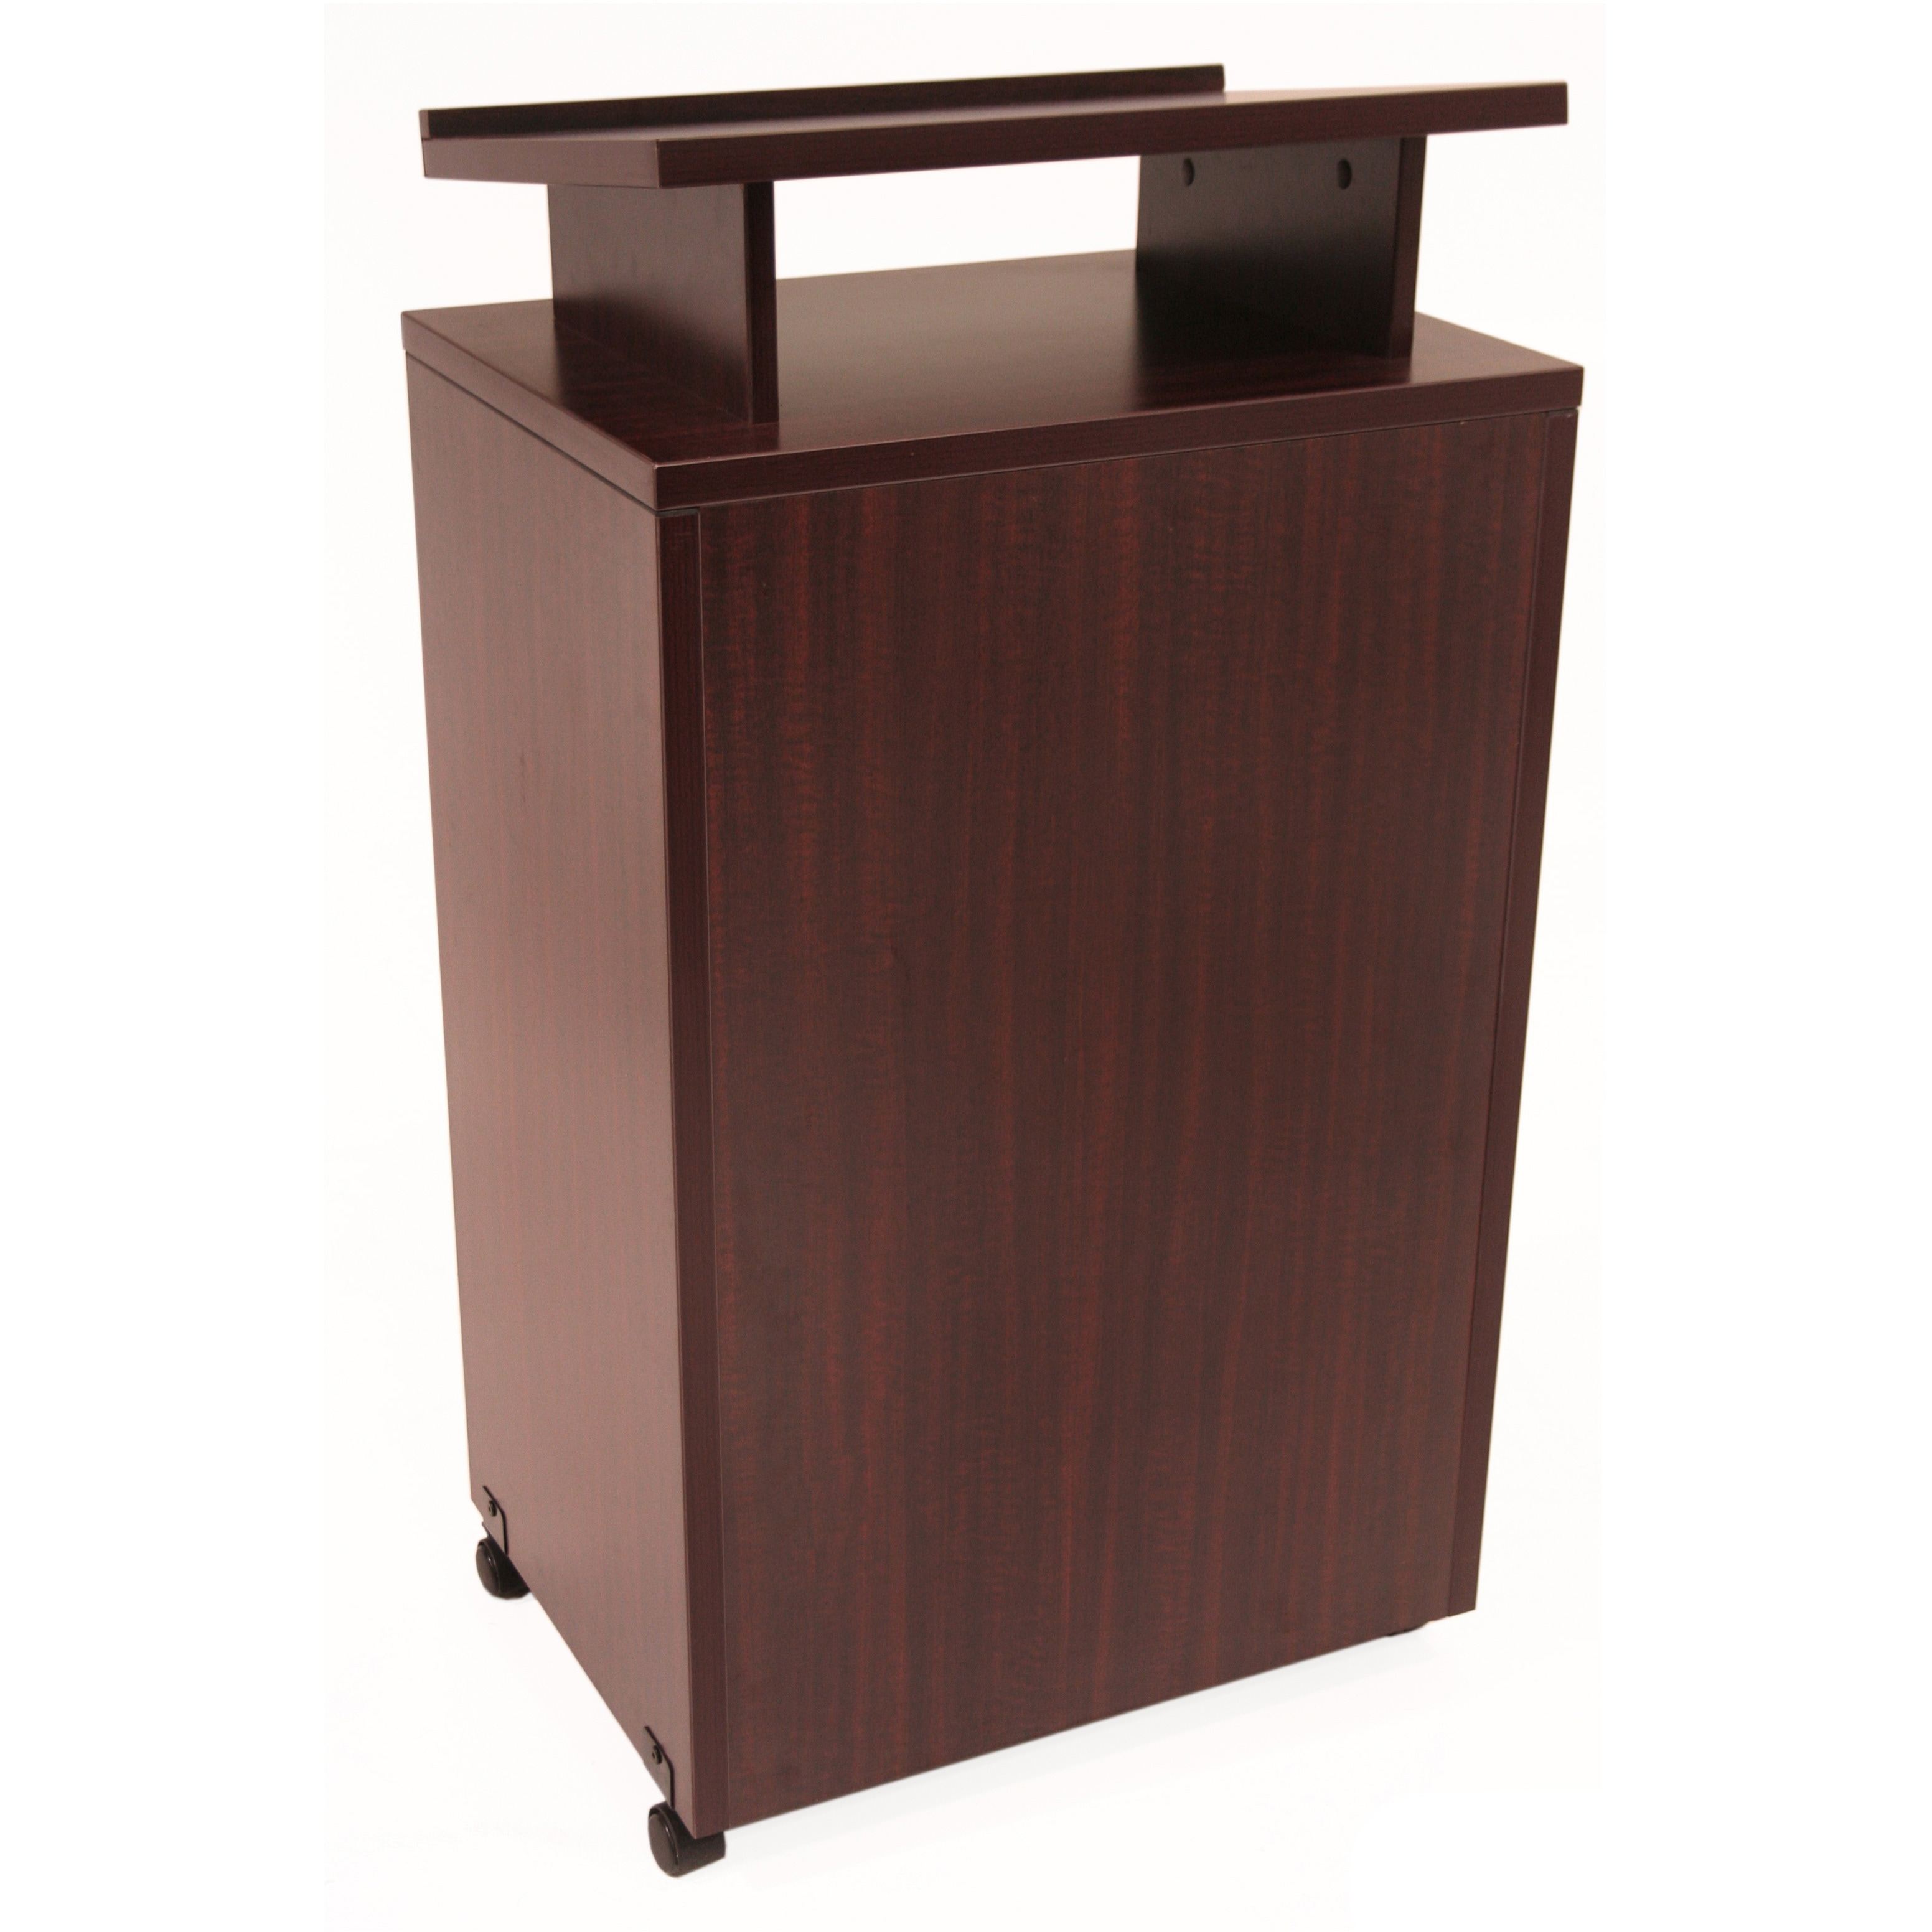 Beau Regency Seating 44 Inch Melamine Laminate Floor Standing Lectern   Free  Shipping Today   Overstock   14671899